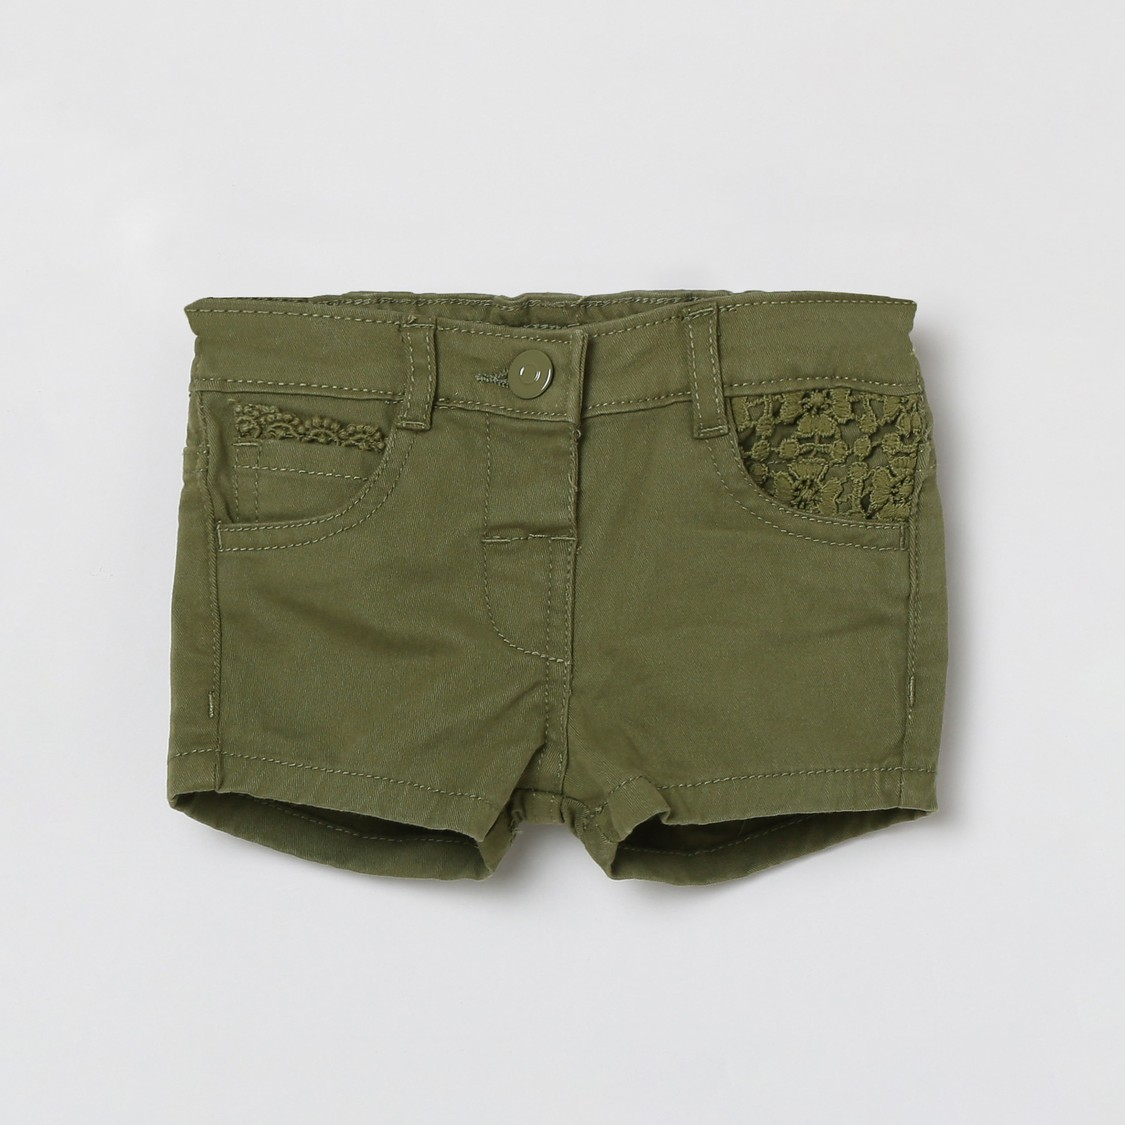 MAX Solid Woven Shorts with Crochet Detail